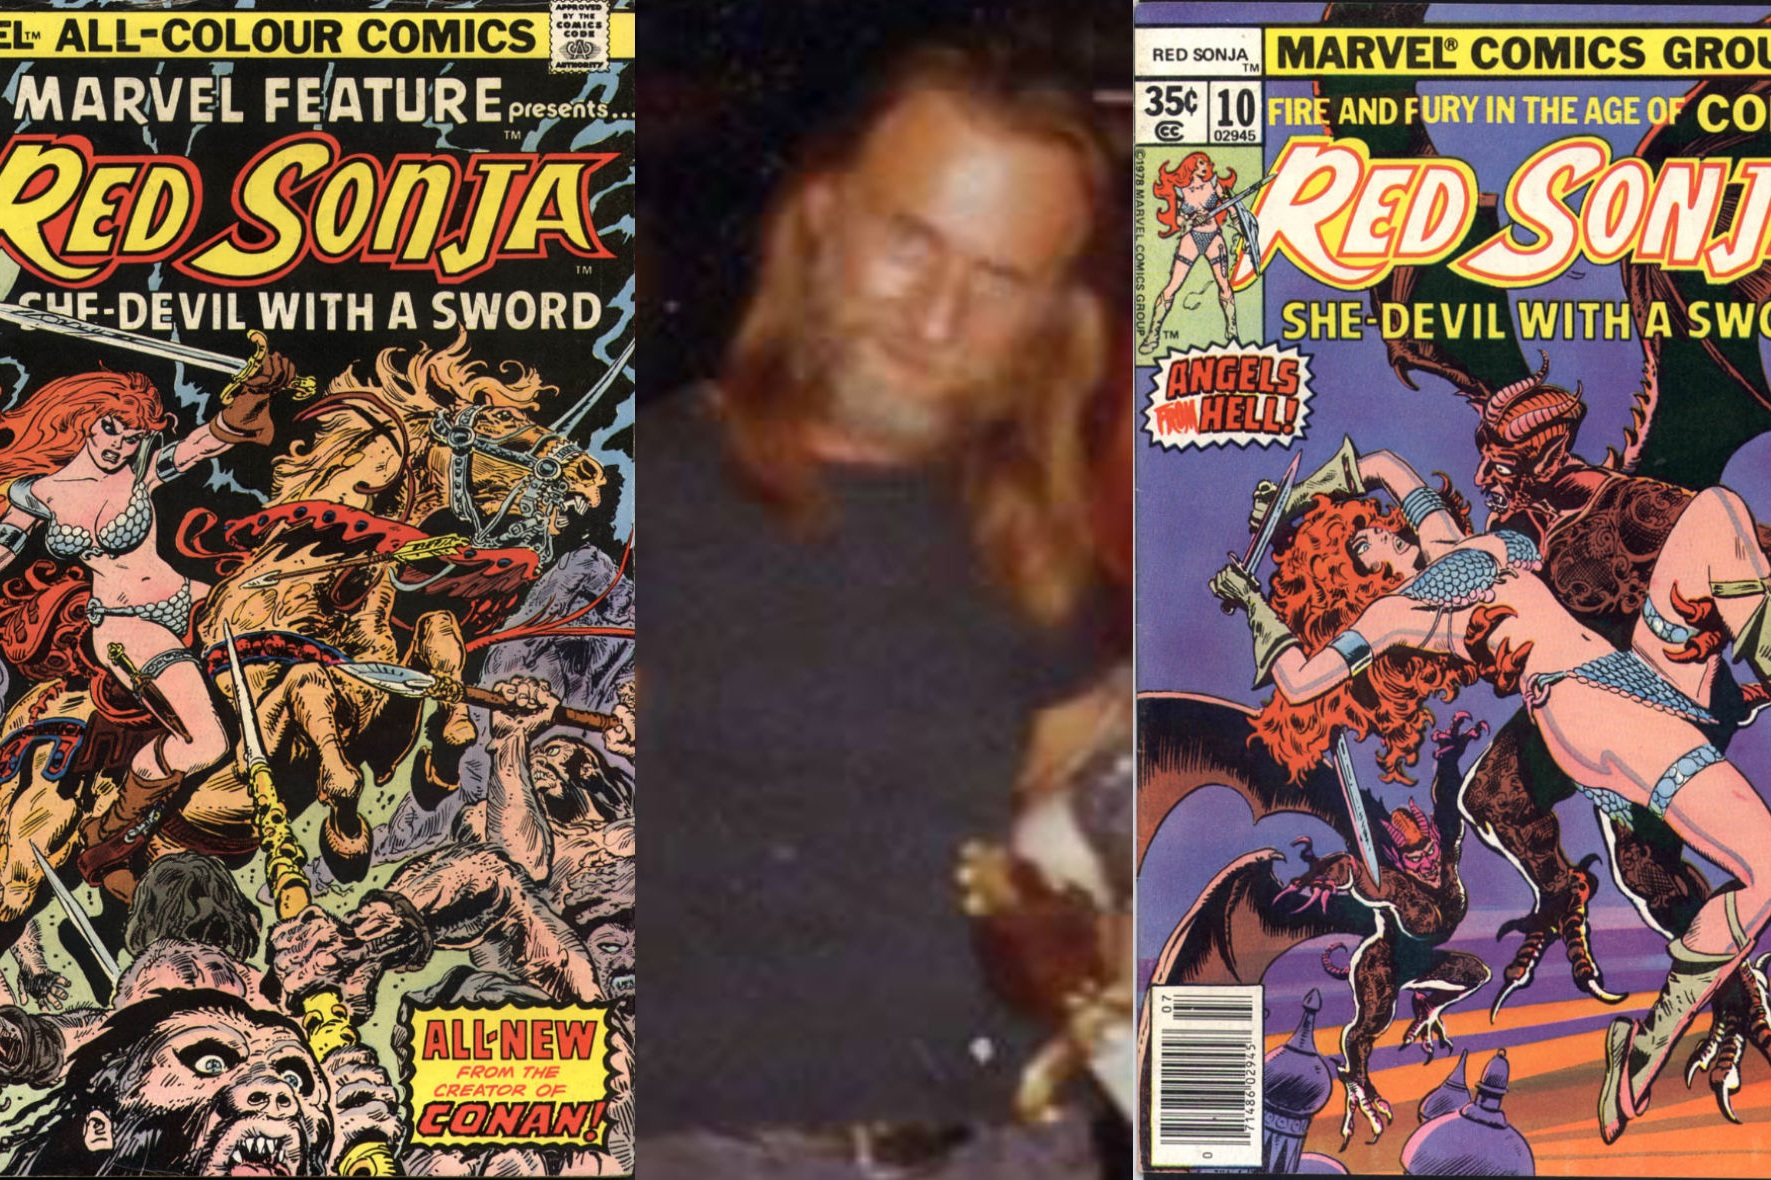 An Interview With Frank Thorne - Red Sonja Artist & Wizard at Large   wRITTEN BY bRYAN sTROUD